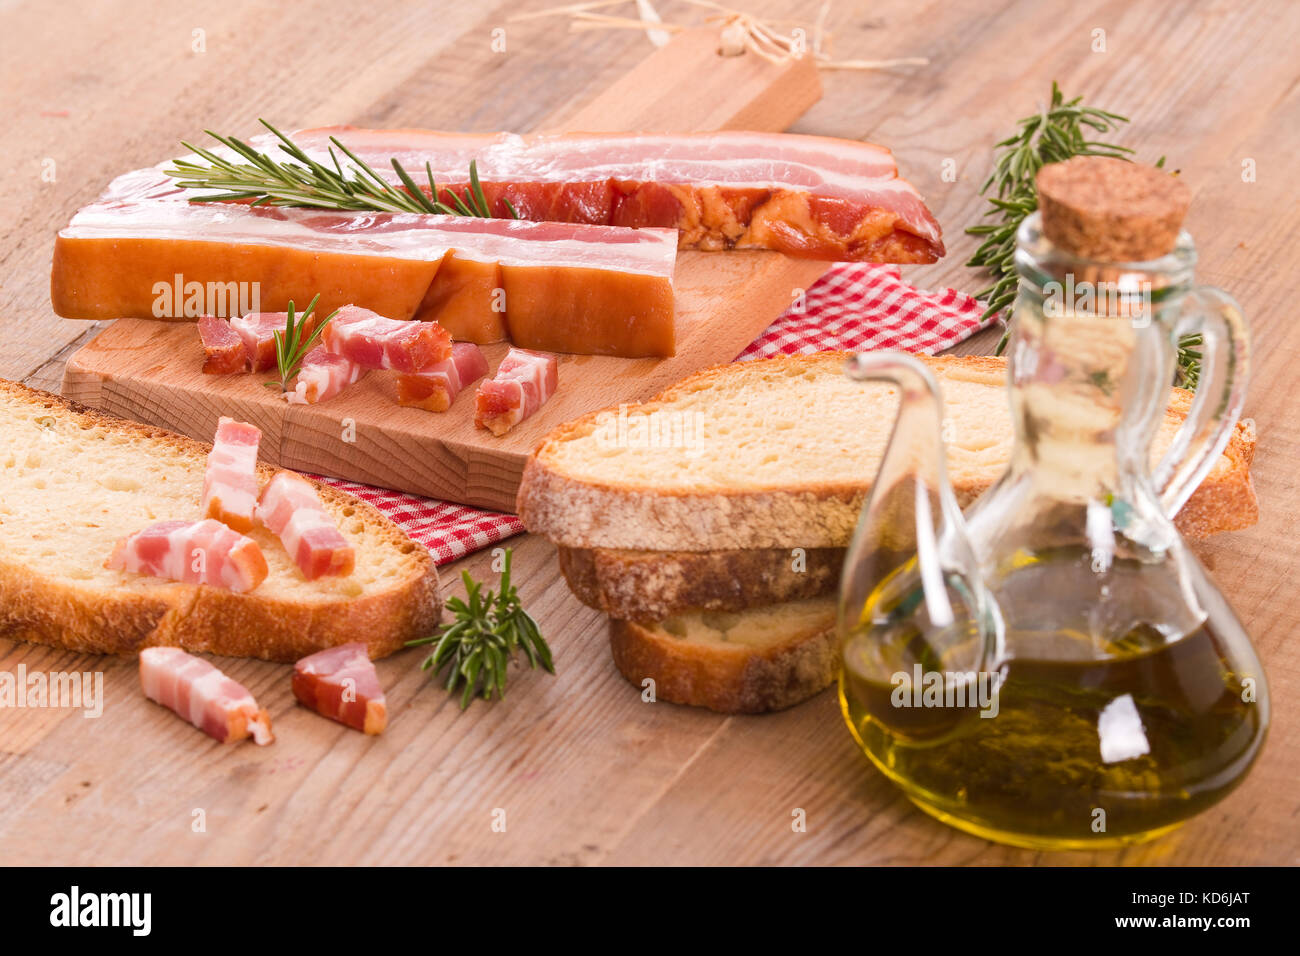 Bread and bacon. - Stock Image